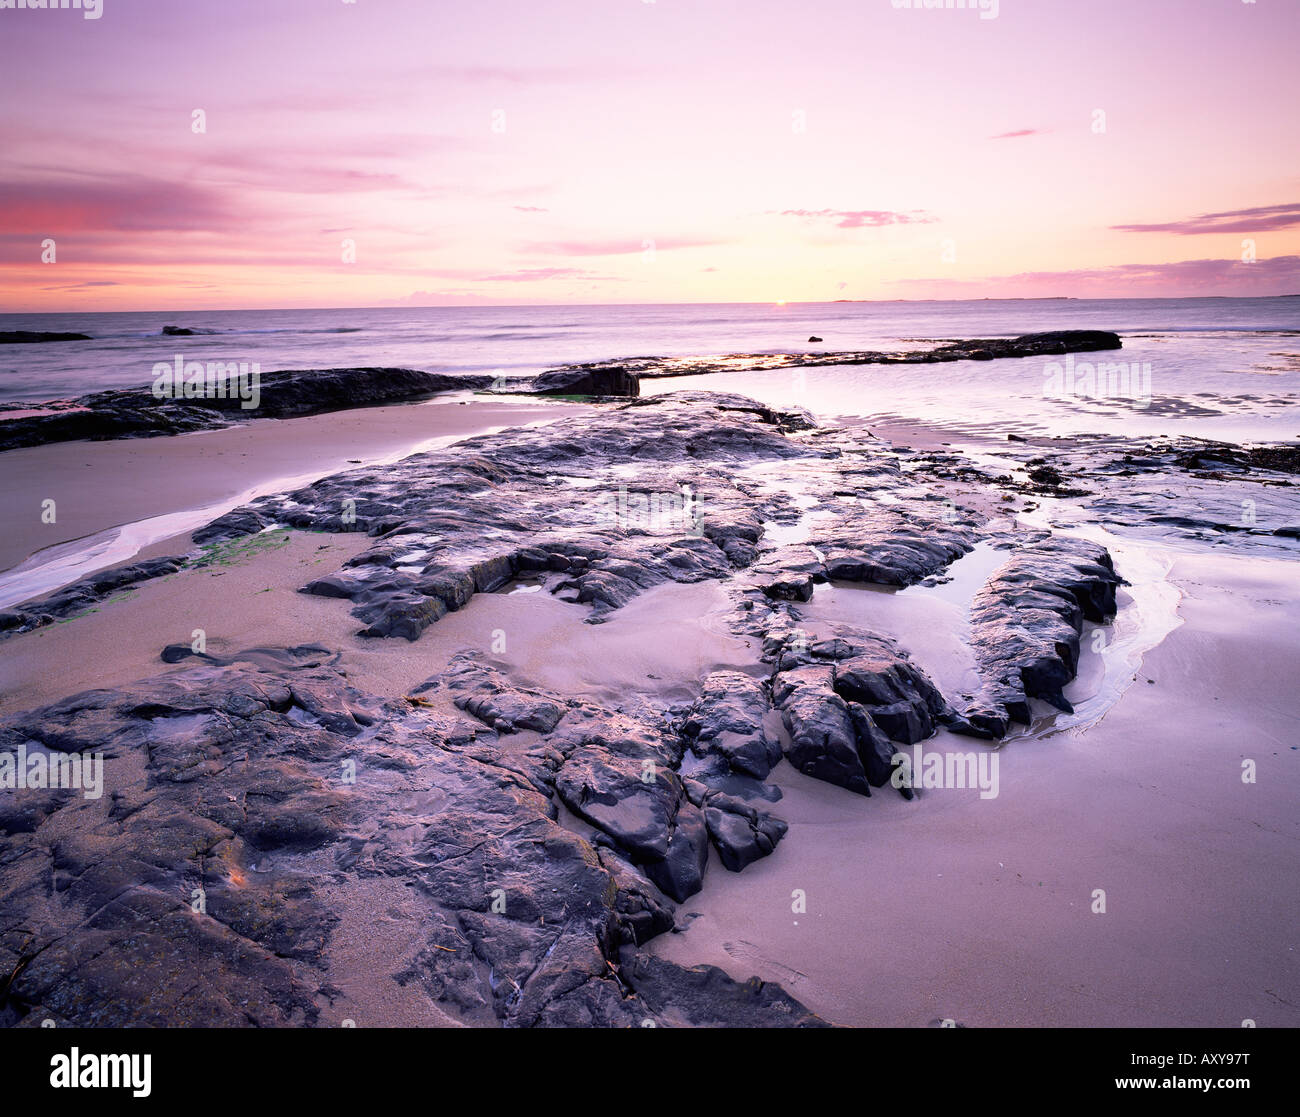 Sunrise over North Sea from Bamburgh beach, Bamburgh, Northumberland, England, United Kingdom, Europe - Stock Image